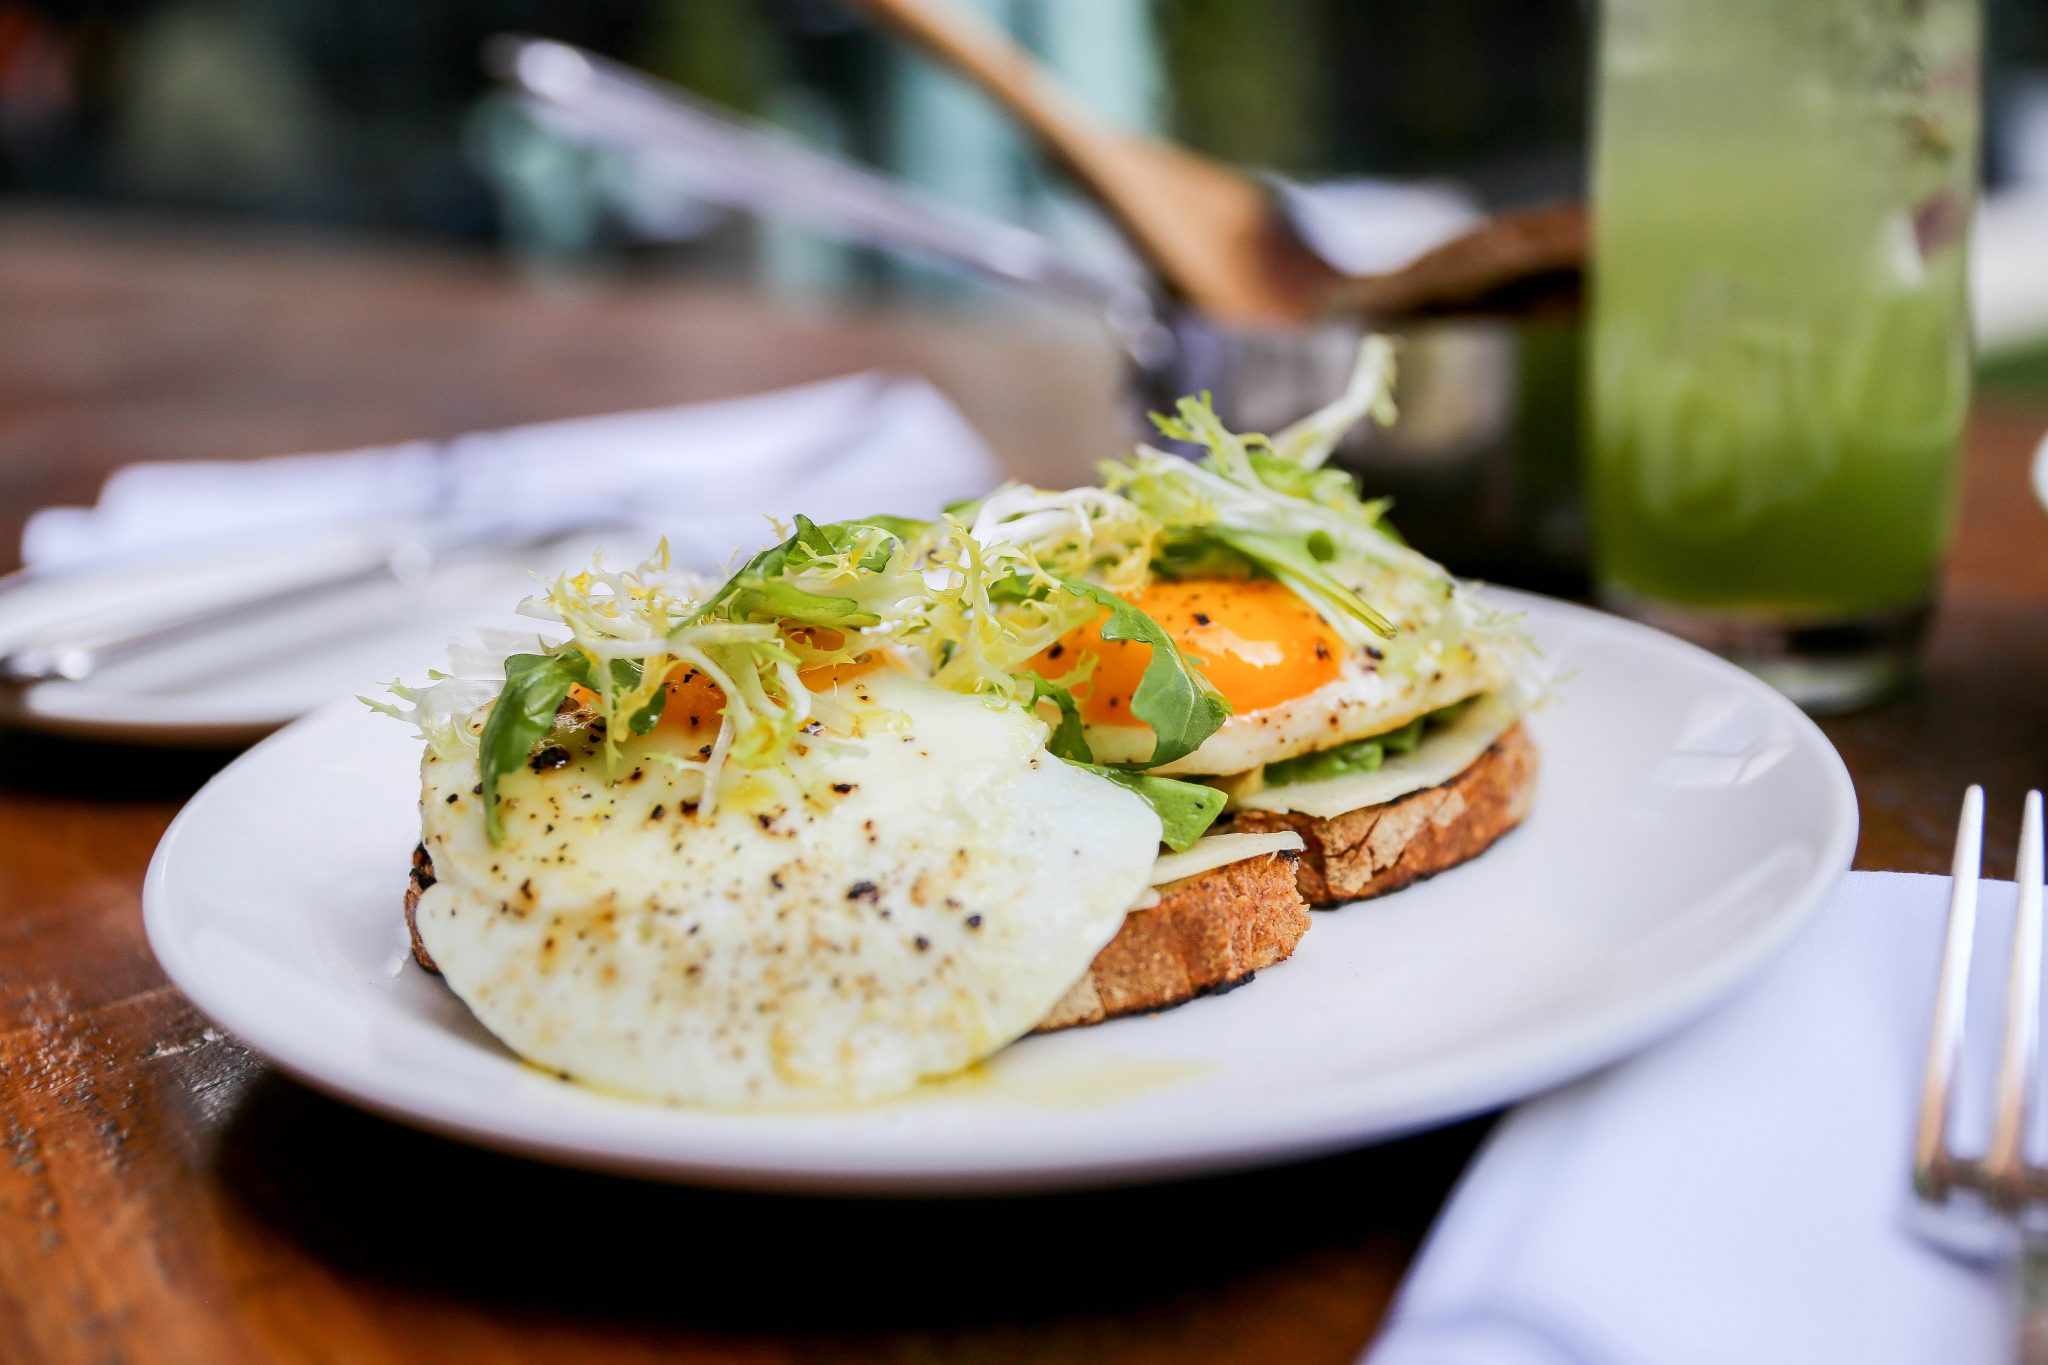 Morning in Midtown: A.M. Food Experiences Worth Setting the Alarm For